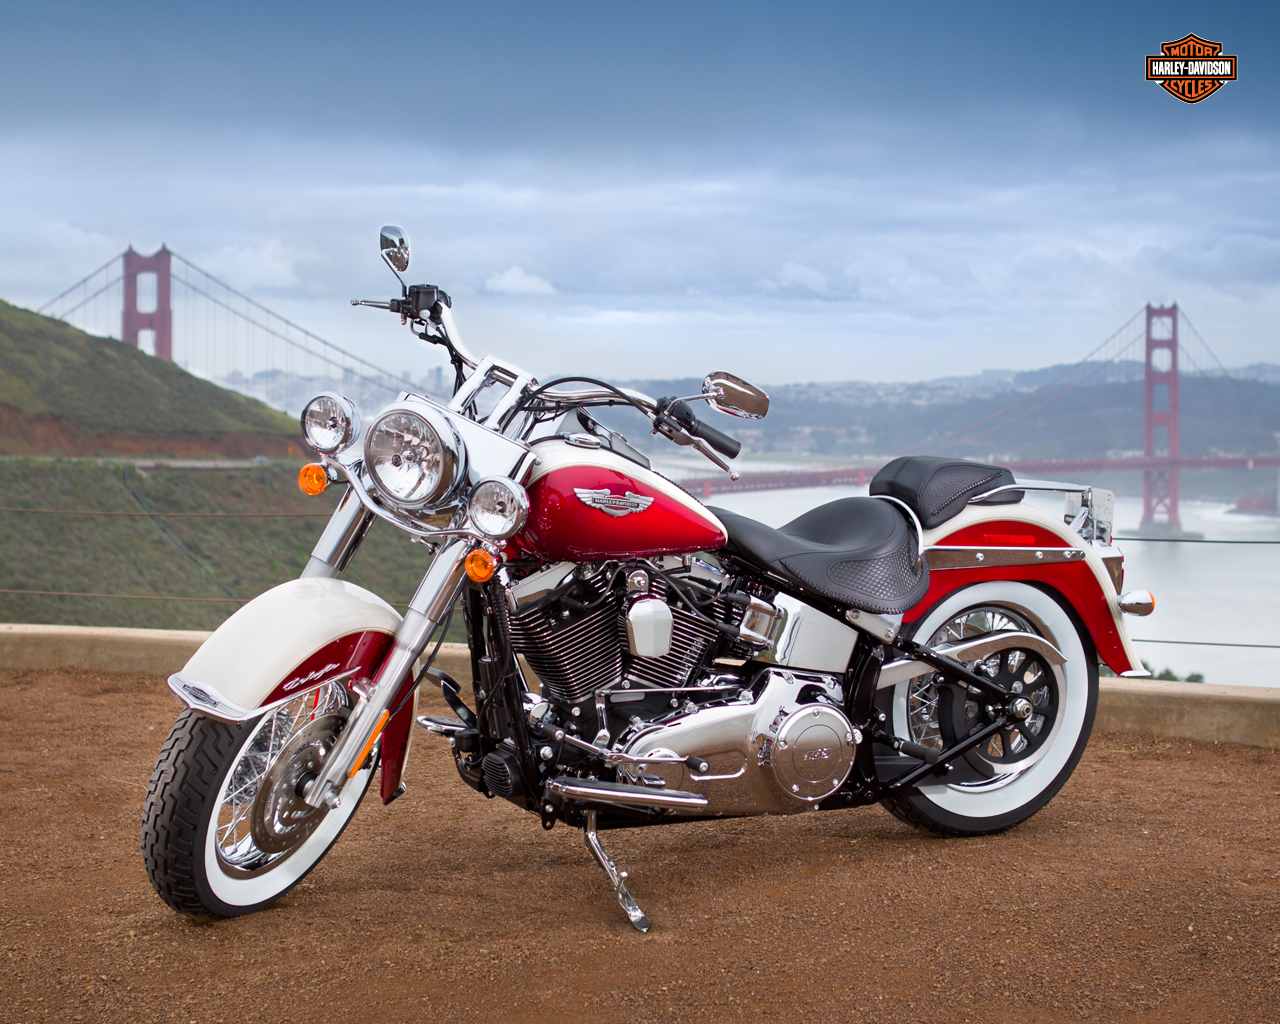 Harley-Davidson HD Wallpapers(High Quality) - All HD ...